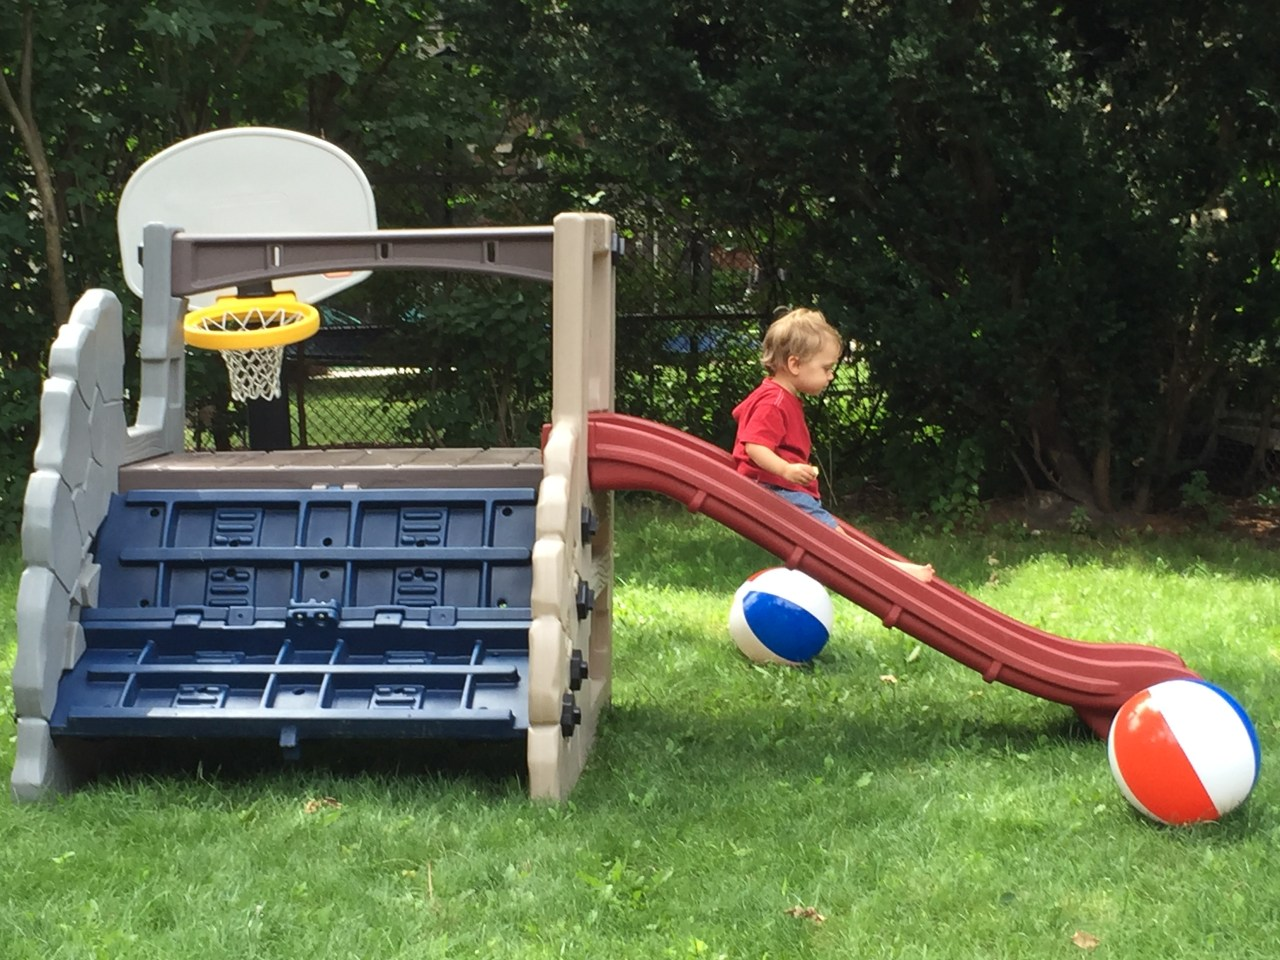 J. on his play structure in the backyard